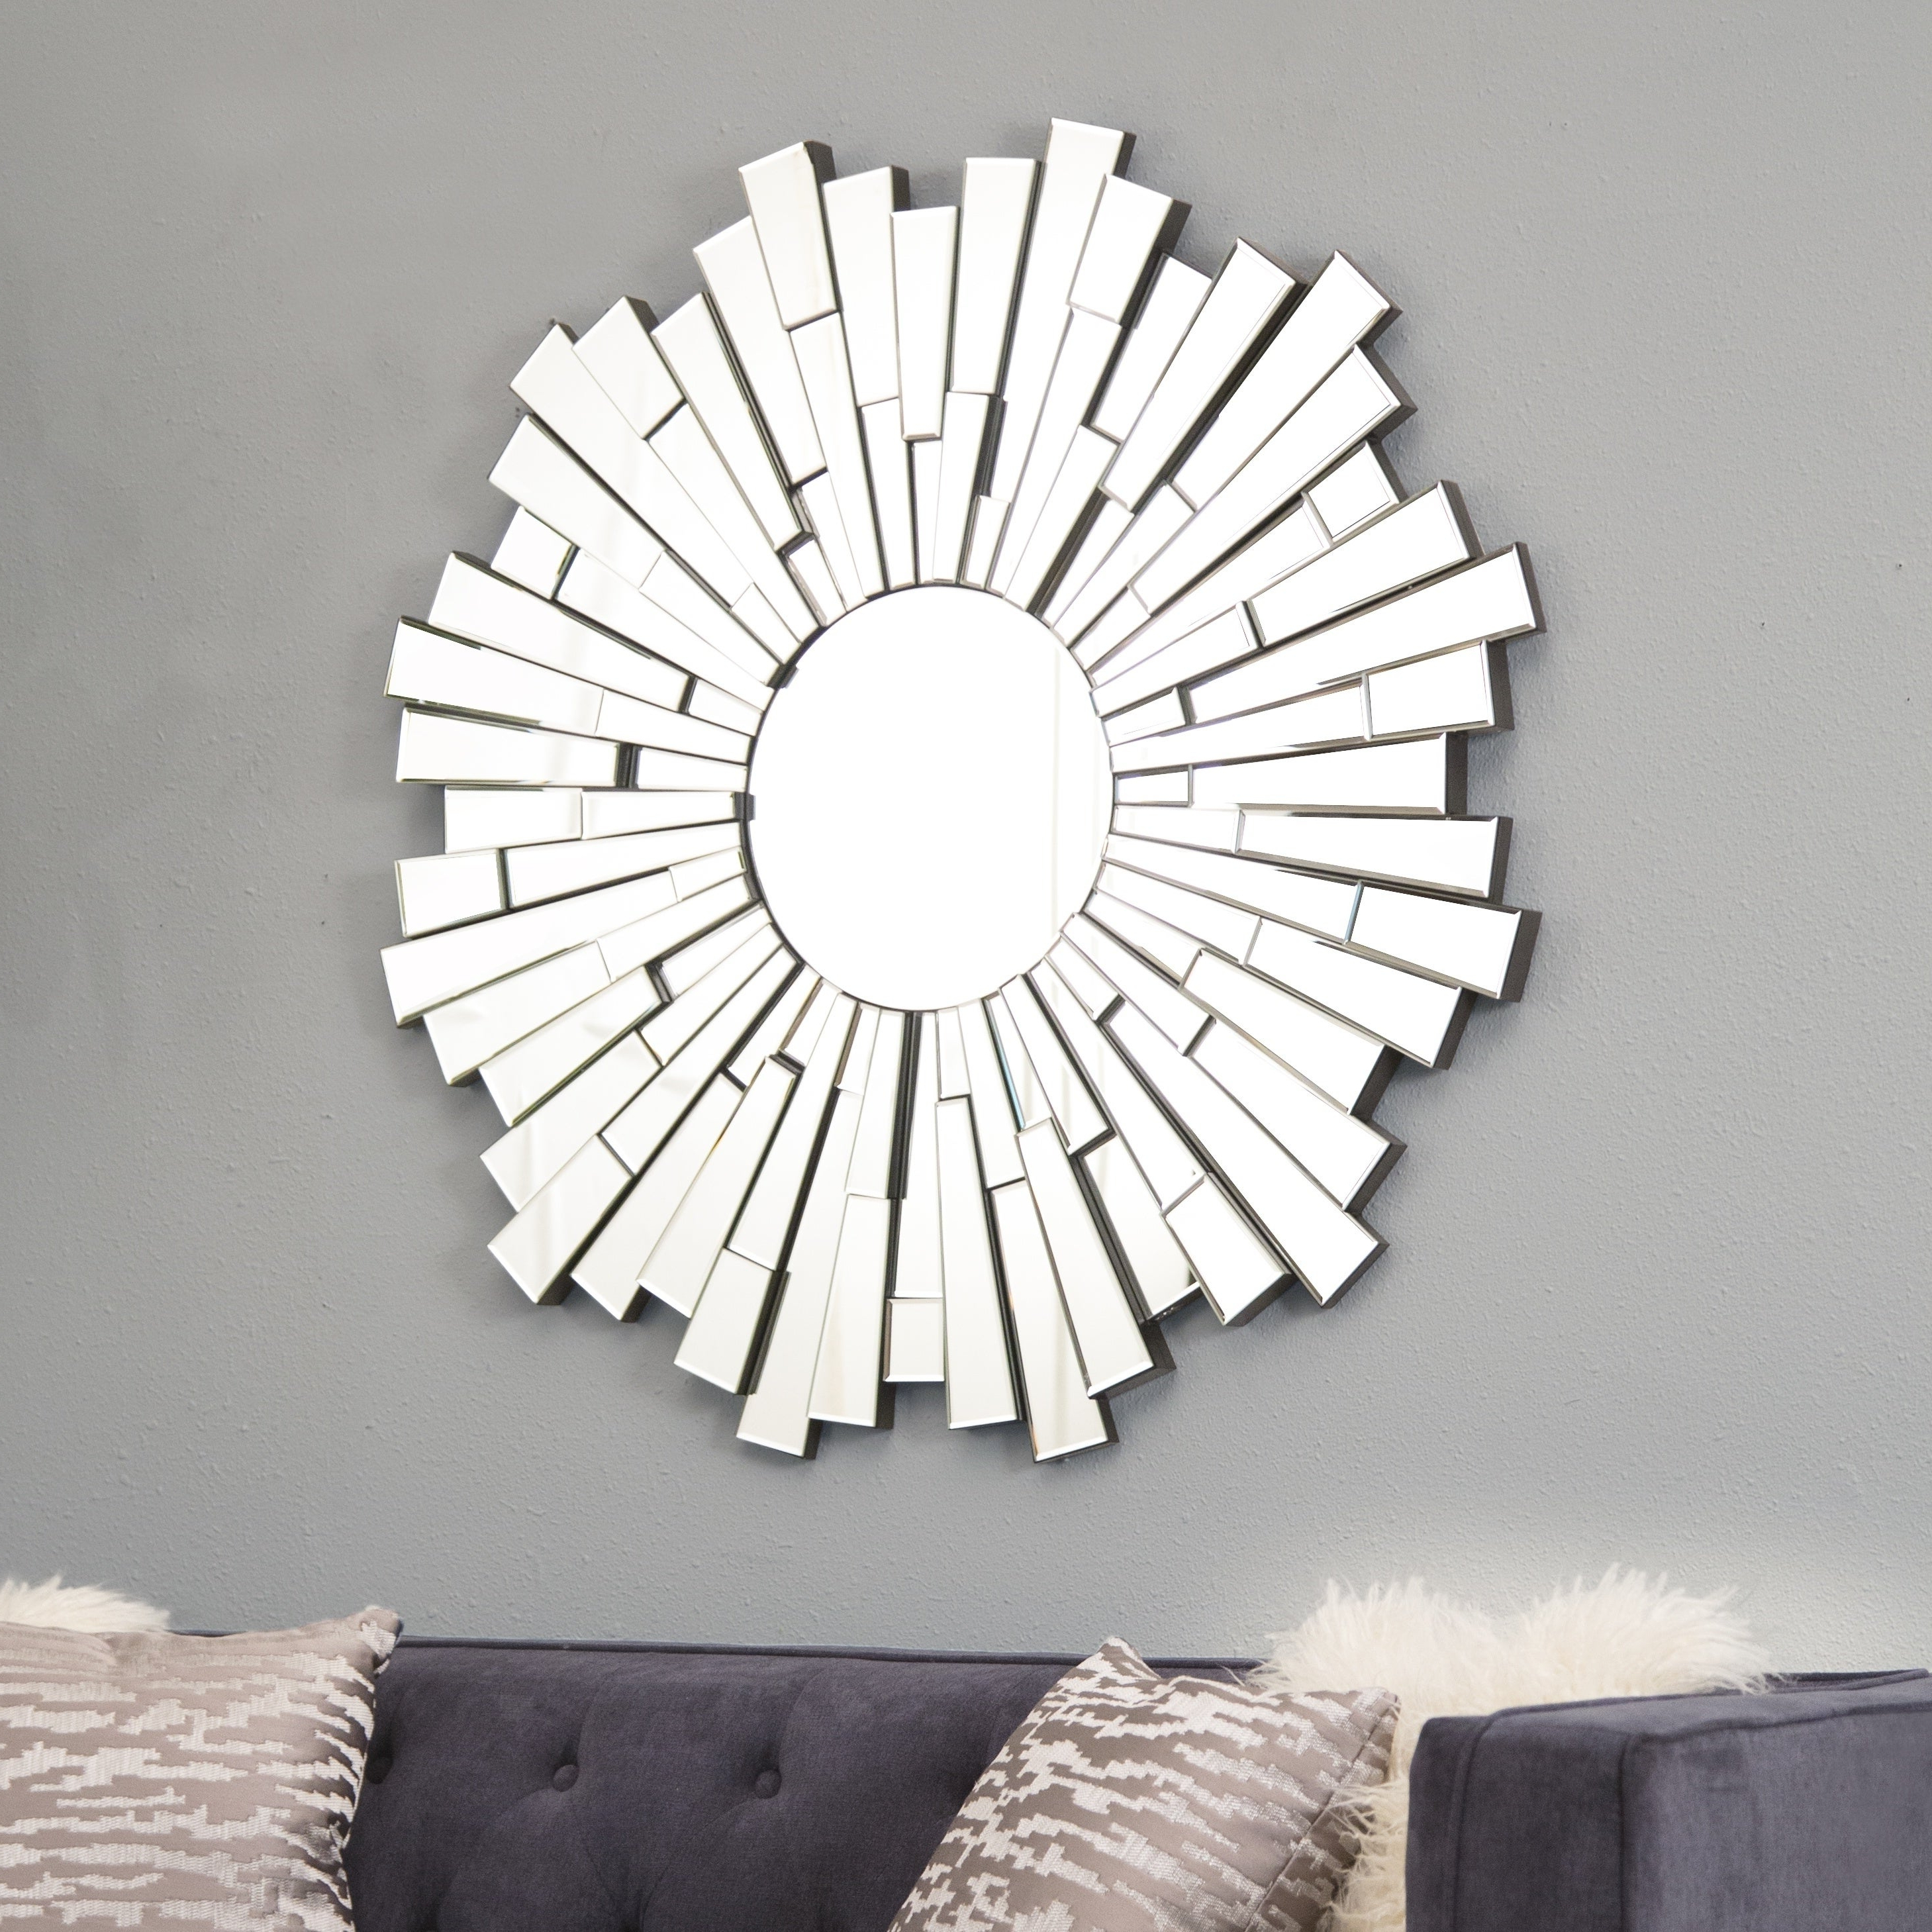 Preferred Circular Wall Mirrors Throughout Abbyson Empire Burst Round Wall Mirror – Silver (View 6 of 20)